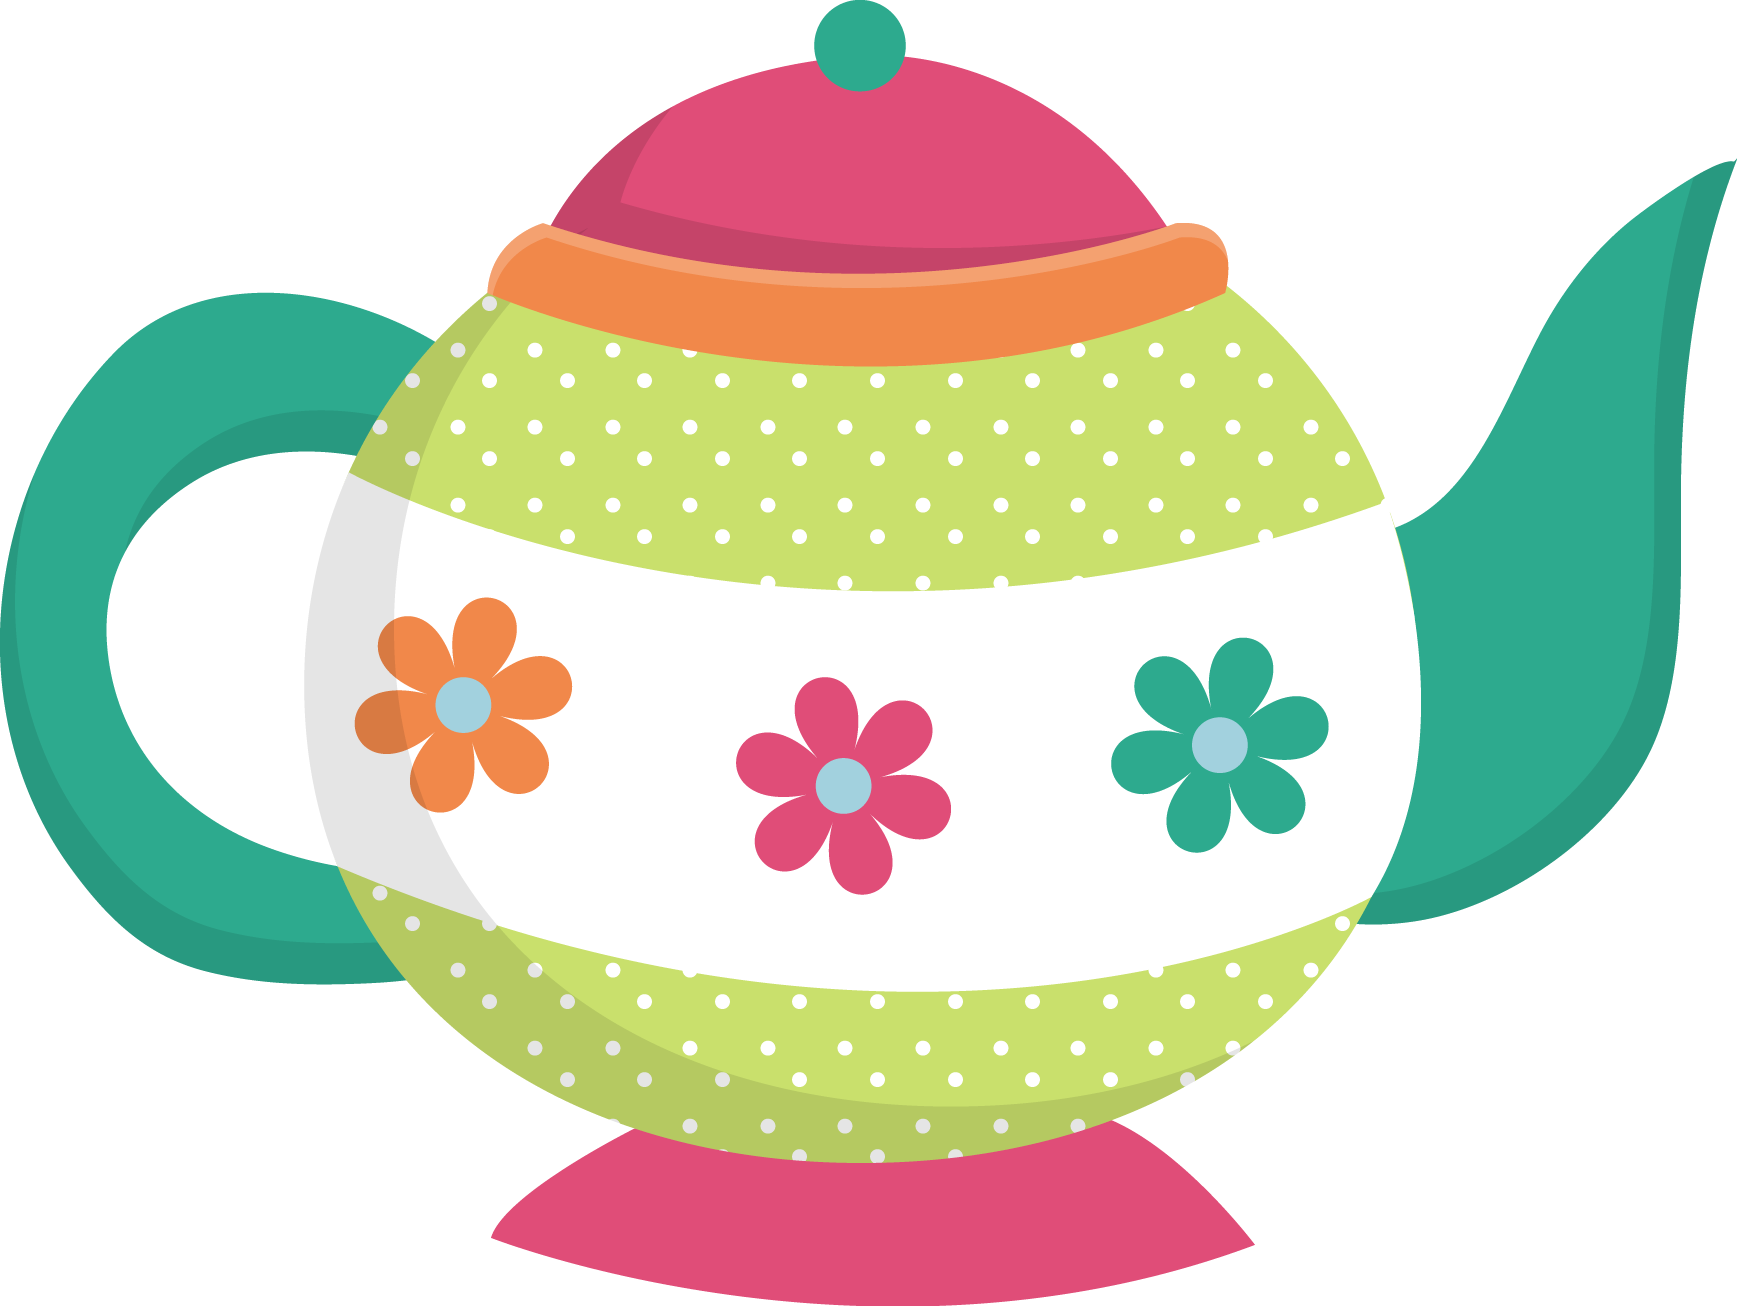 Tea cup teacup clipart free image